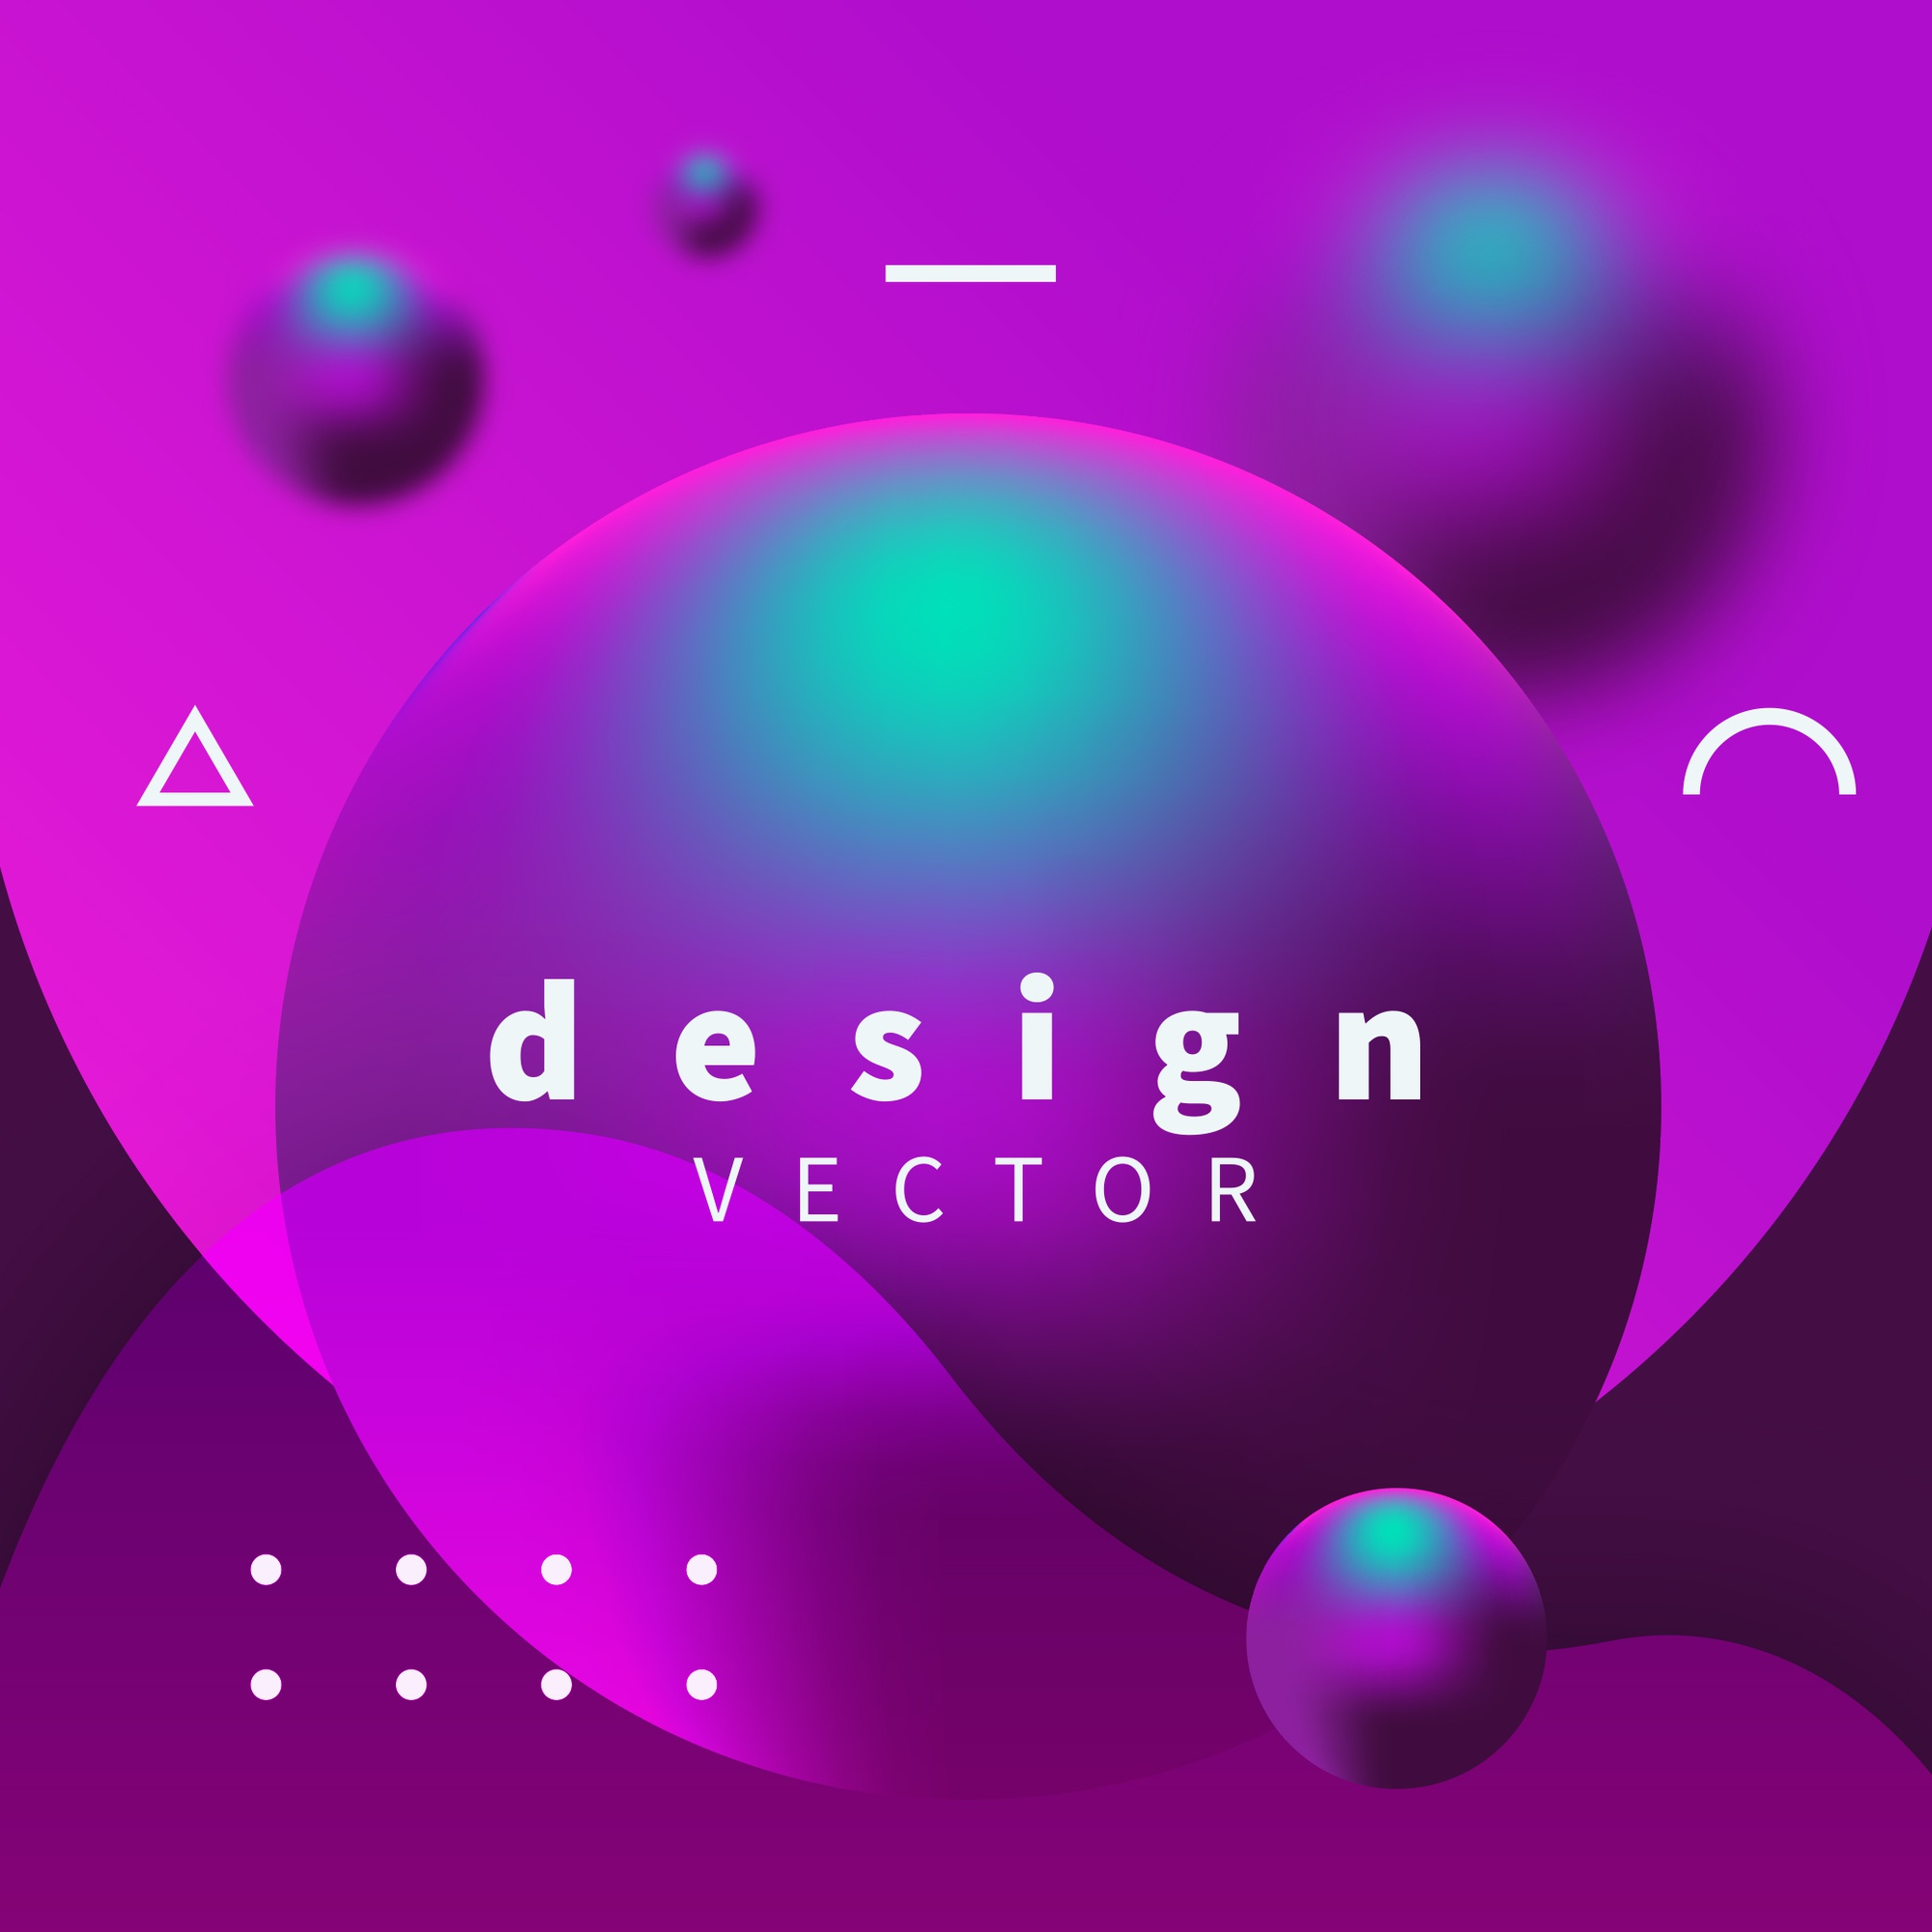 Modern design with purple and blue spheres